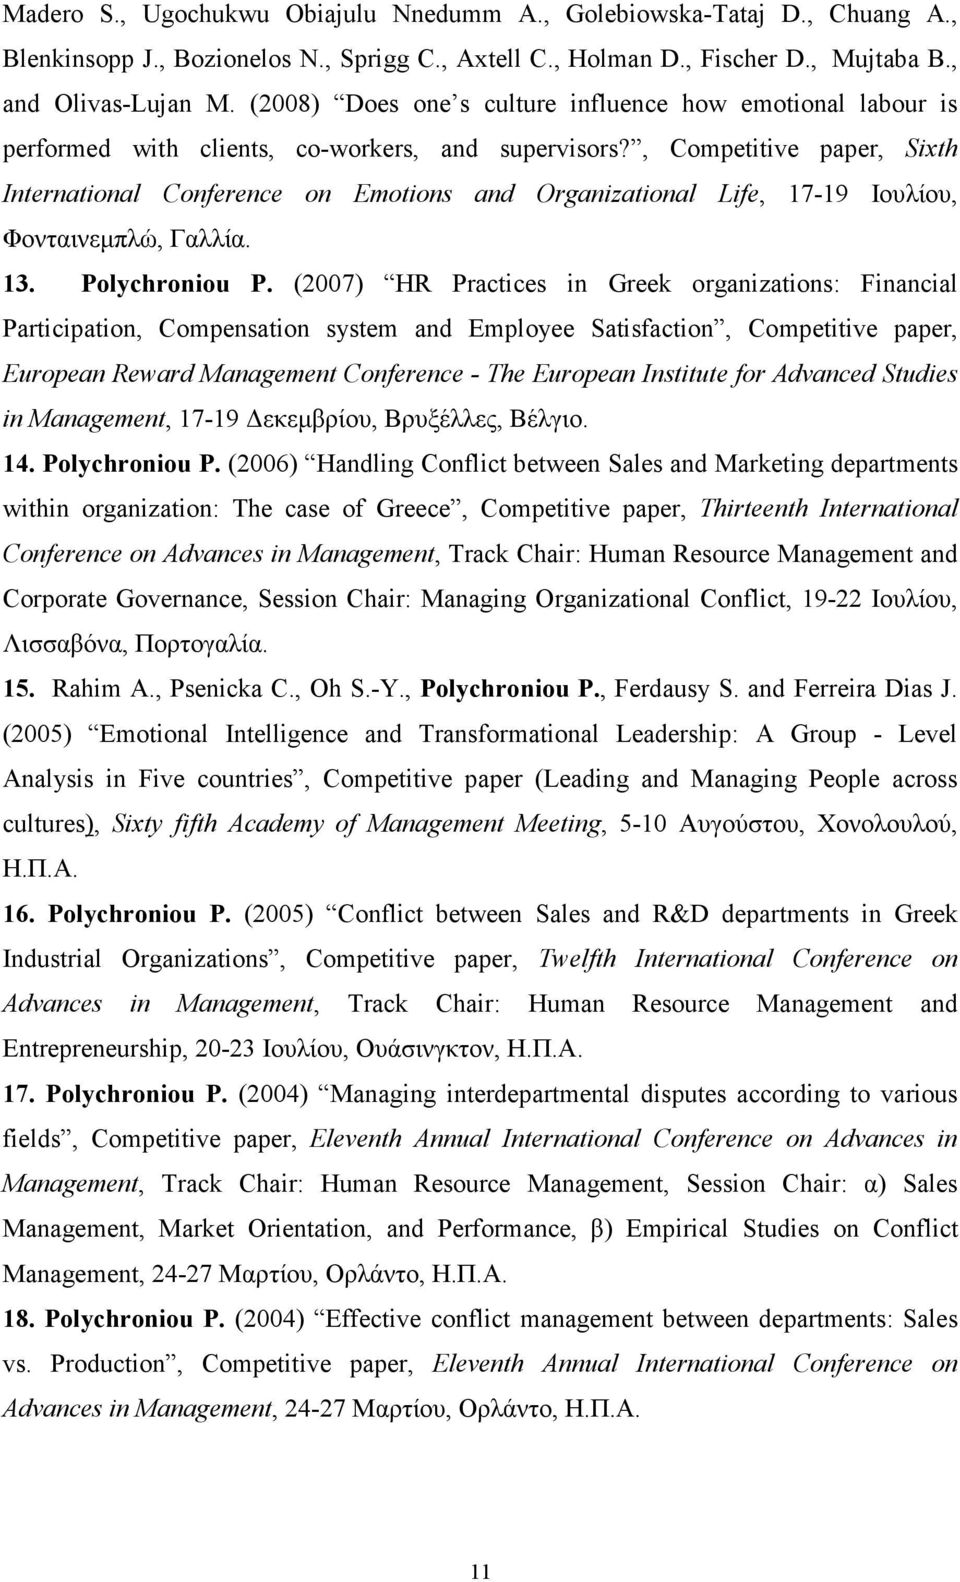 , Competitive paper, Sixth International Conference on Emotions and Organizational Life, 17-19 Ιουλίου, Φονταινεµπλώ, Γαλλία. 13. Polychroniou P.